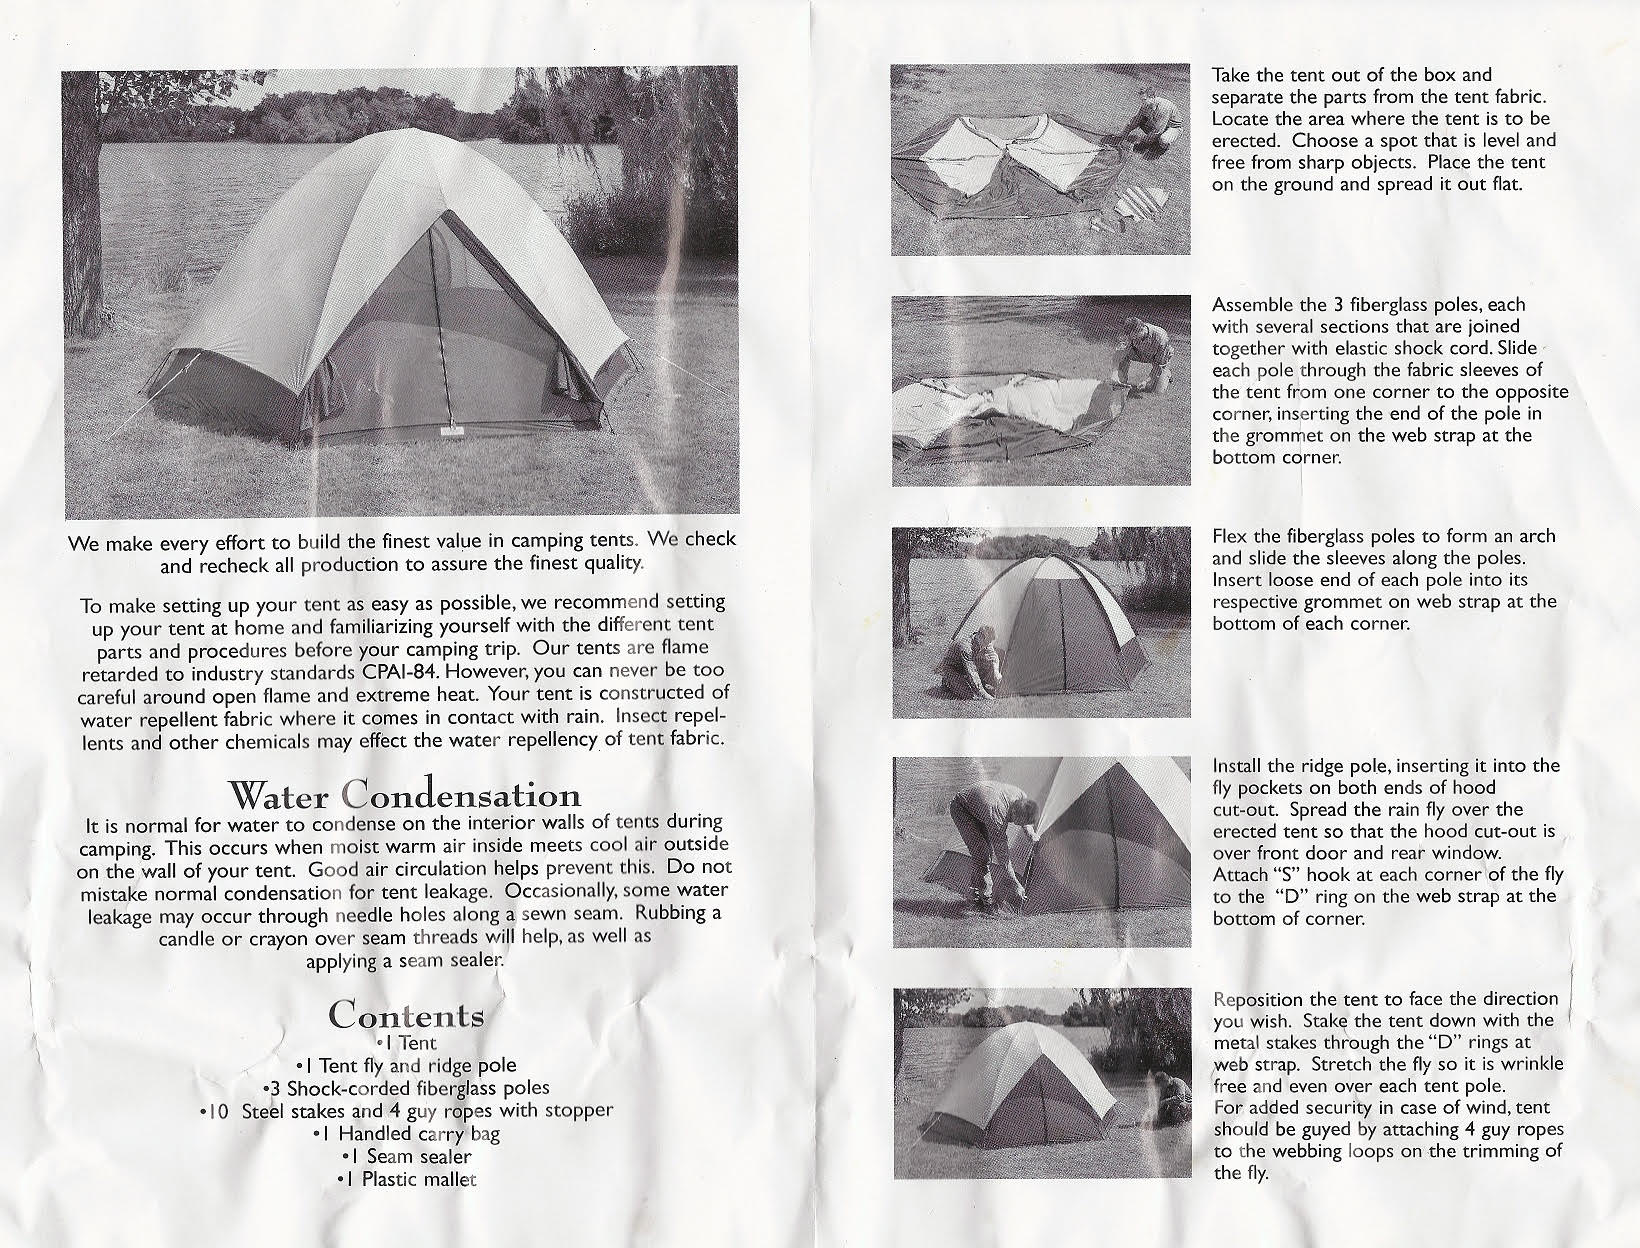 Greatland tent Instructions.  sc 1 st  My Favorite C&ing Store & ISU1977 Greatland Tent - Whereu0027s the dome?